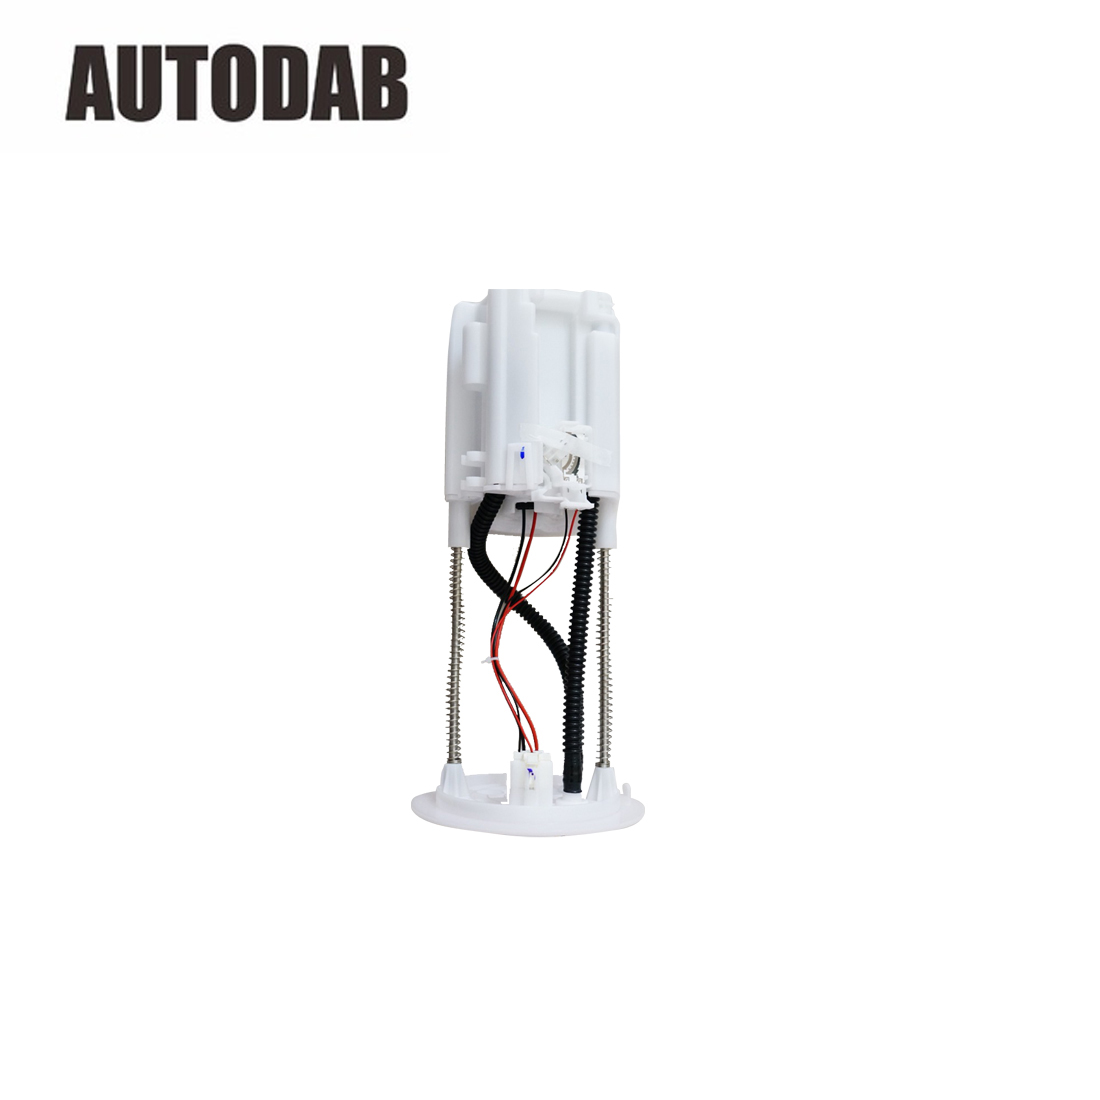 High Quality fuel pump assembly for Toyota land cruiser prado 2700 4000 GRJ120 two tubes  77020 35072 DSF FT008 #01051019 308|Fuel Pumps| |  - title=